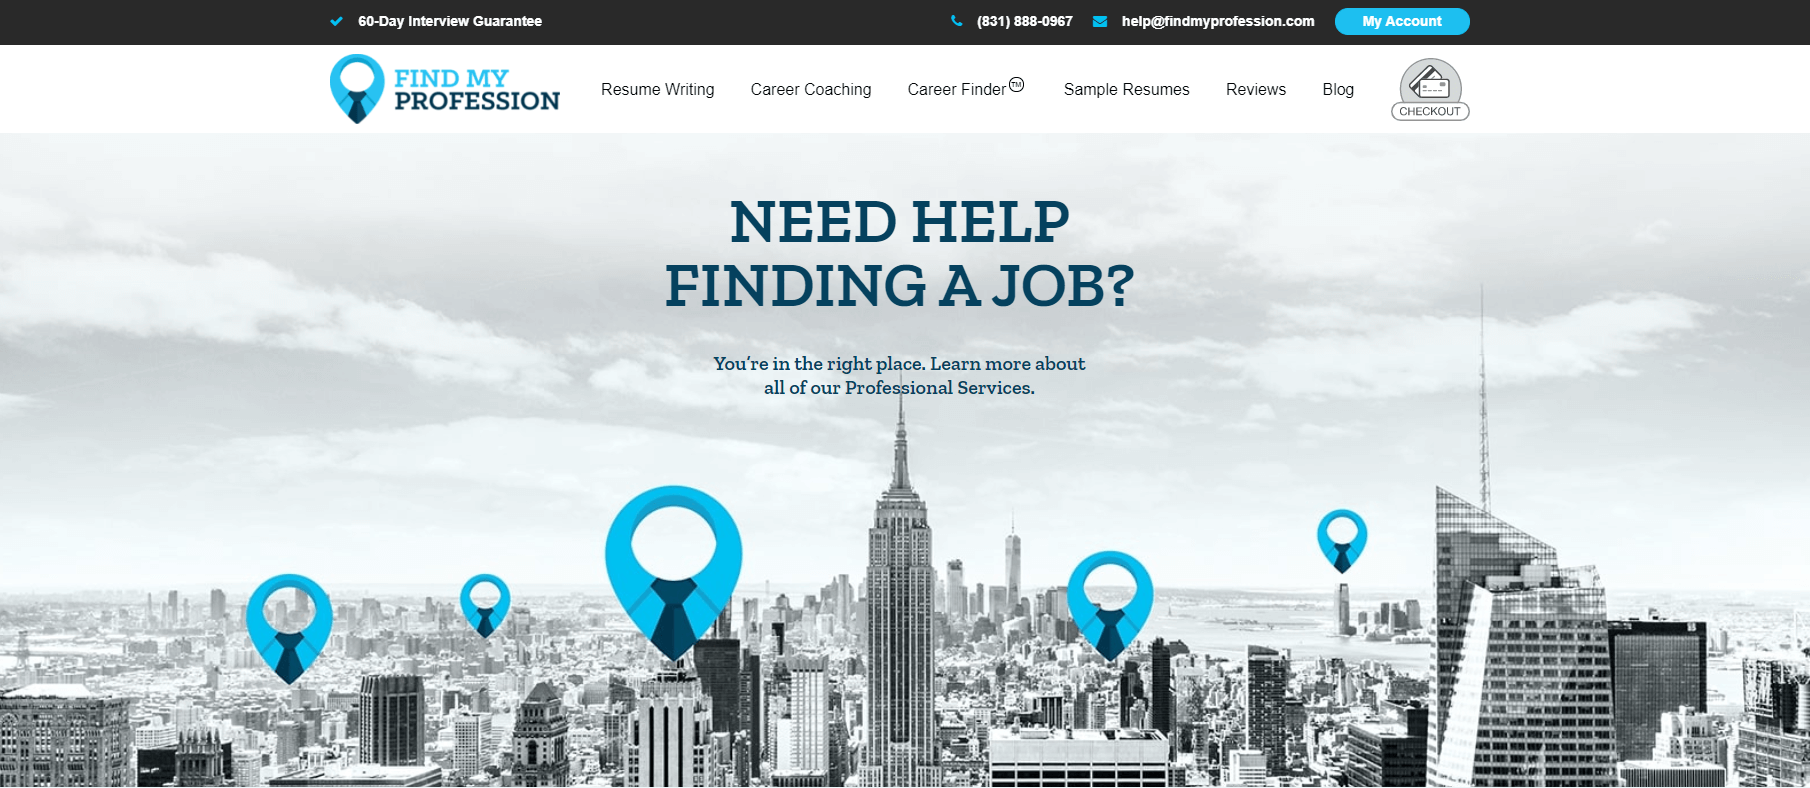 findmyprofession.com Review by TopResumeWritingServices